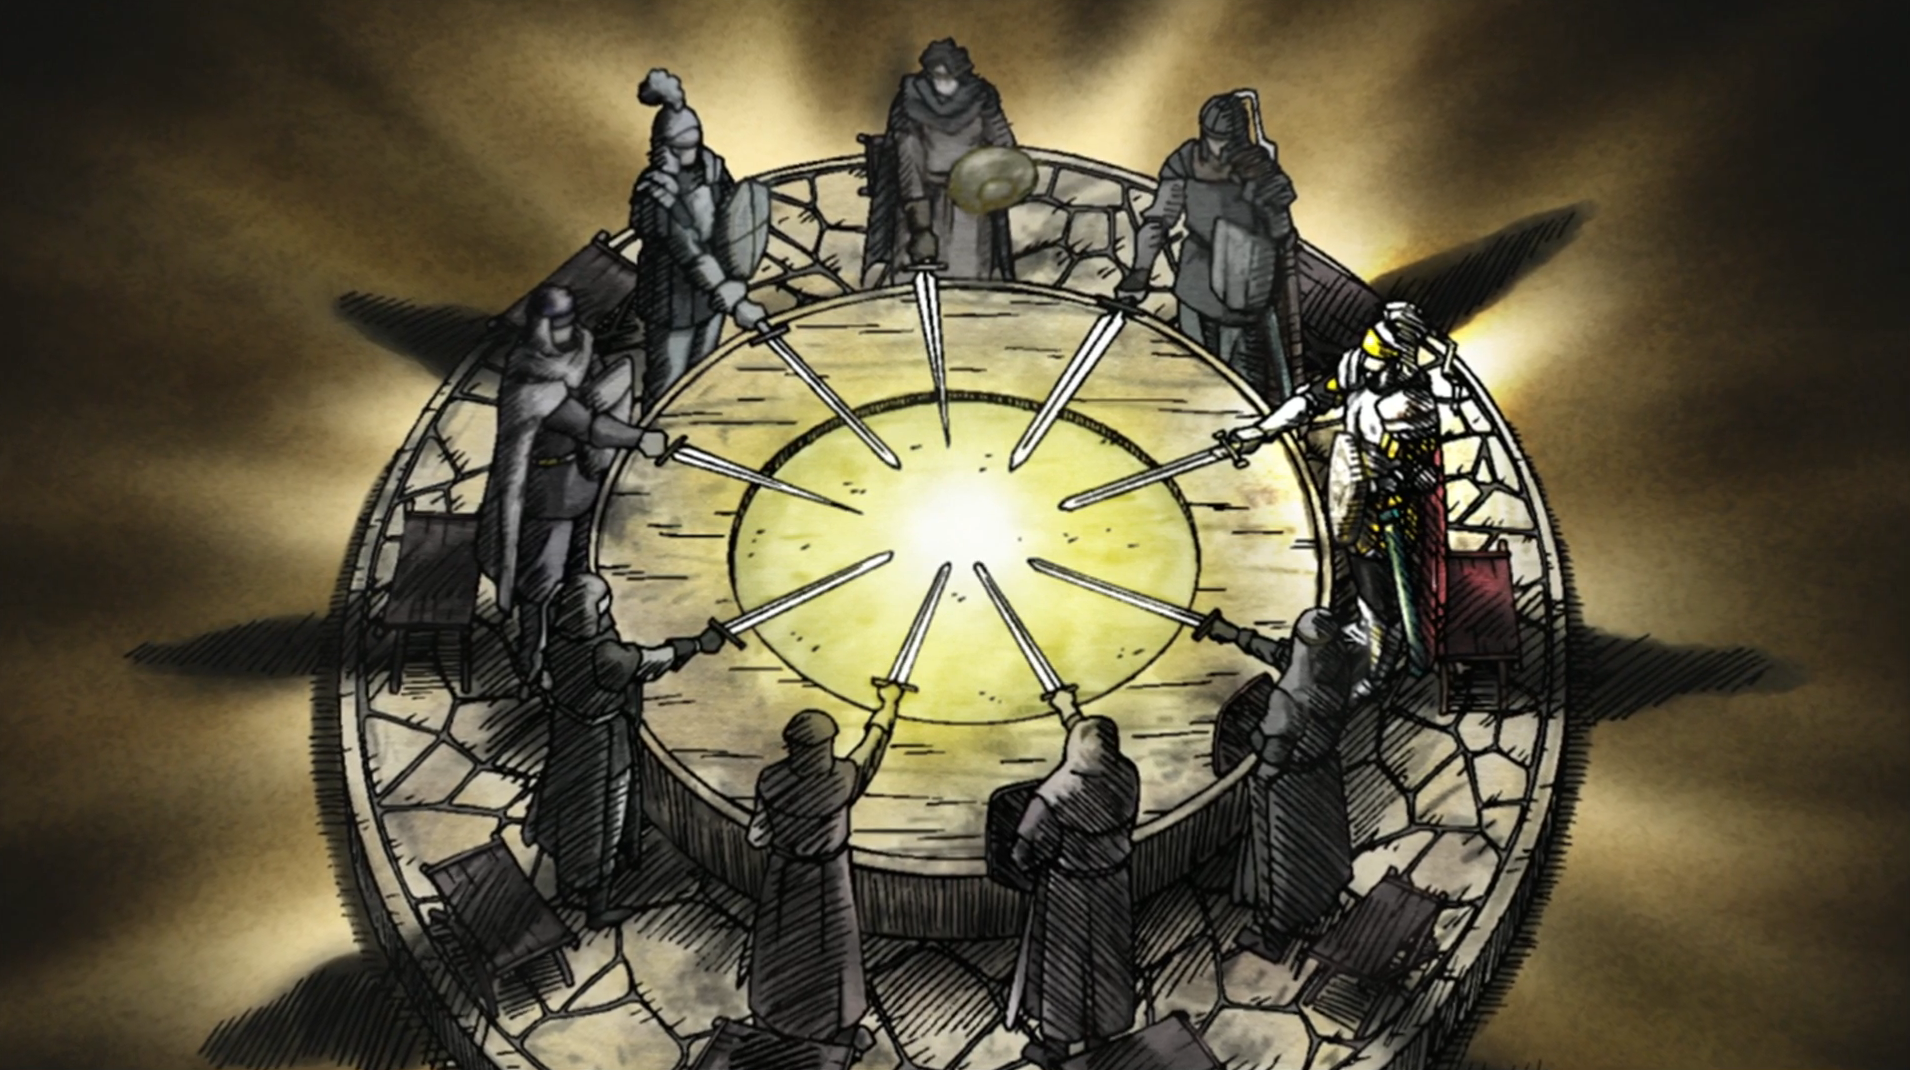 Knights Of The Round Table Wiki Image Soul Eater Episode 17 Knights Of The Round Tablepng